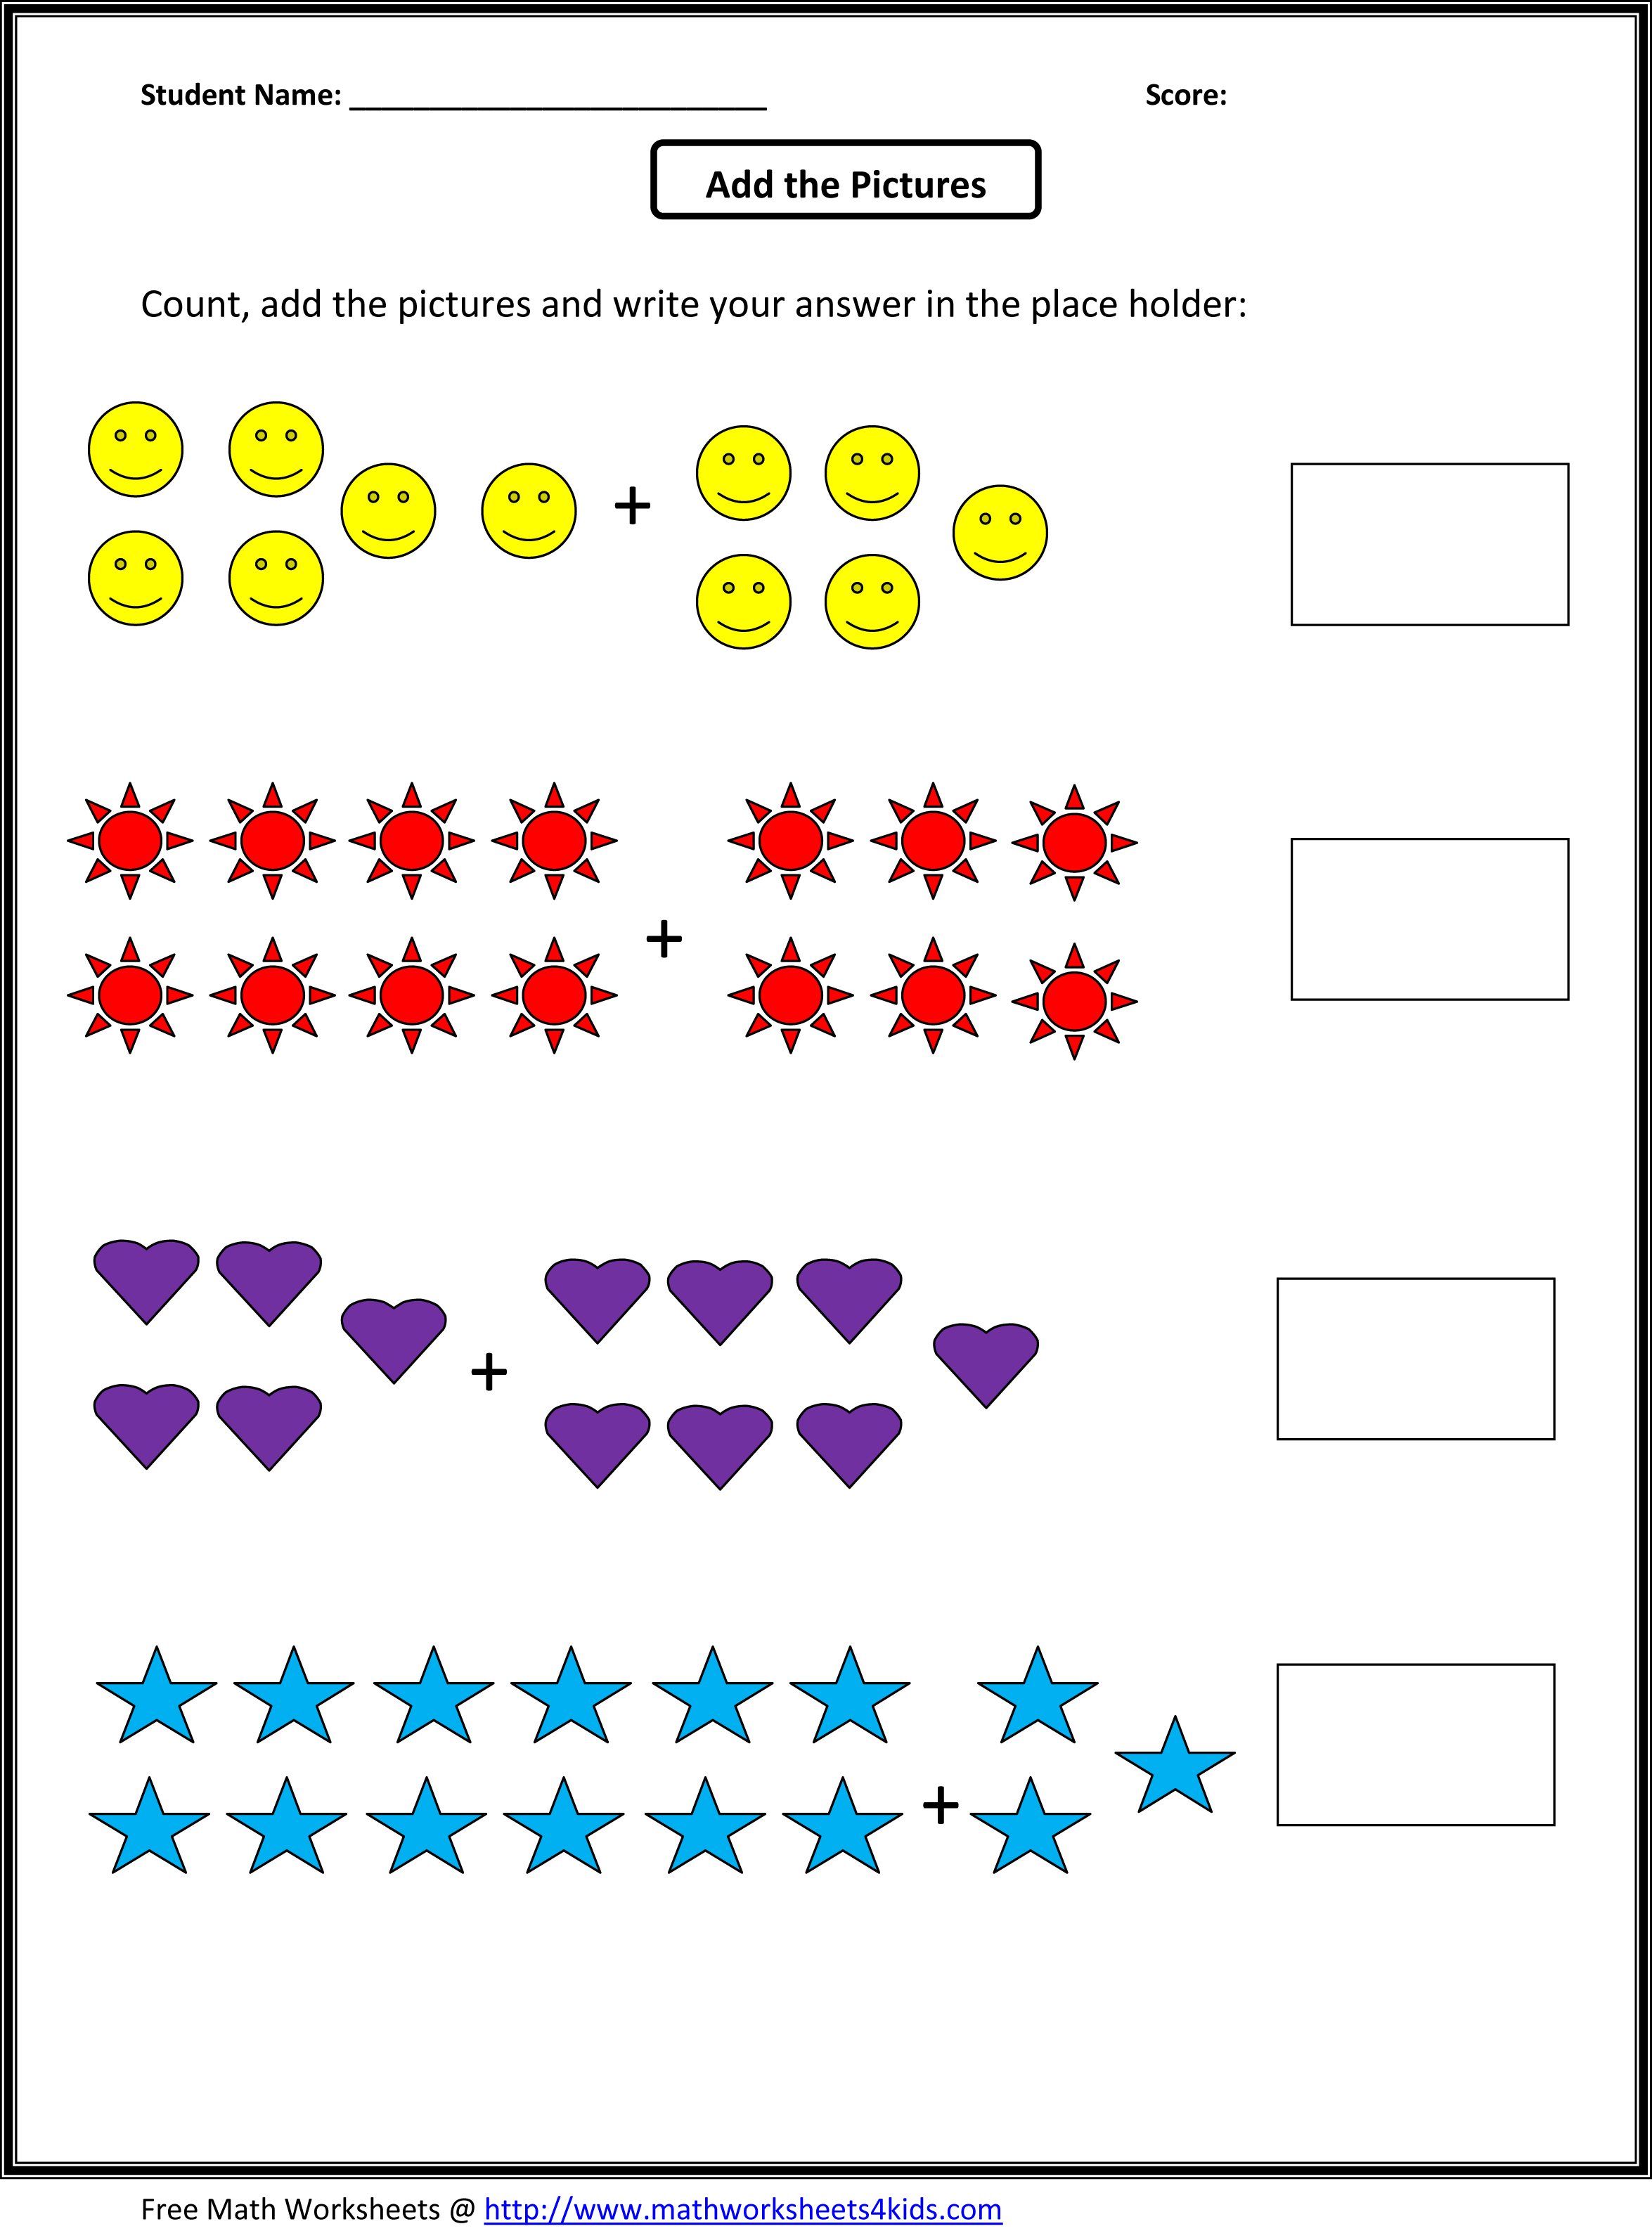 Weirdmailus  Pleasing Grade  Maths Worksheet  Reocurent With Extraordinary Math Worksheets For St Grade Free  Reocurent With Delightful Cub Scout Belt Loop Worksheet Also Worksheets For Th Graders In Addition Food Guide Pyramid Worksheets And Two Step Linear Equations Worksheet As Well As Multiplication By  Worksheets Additionally Excel Vba Reference Worksheet From Reocurentcom With Weirdmailus  Extraordinary Grade  Maths Worksheet  Reocurent With Delightful Math Worksheets For St Grade Free  Reocurent And Pleasing Cub Scout Belt Loop Worksheet Also Worksheets For Th Graders In Addition Food Guide Pyramid Worksheets From Reocurentcom